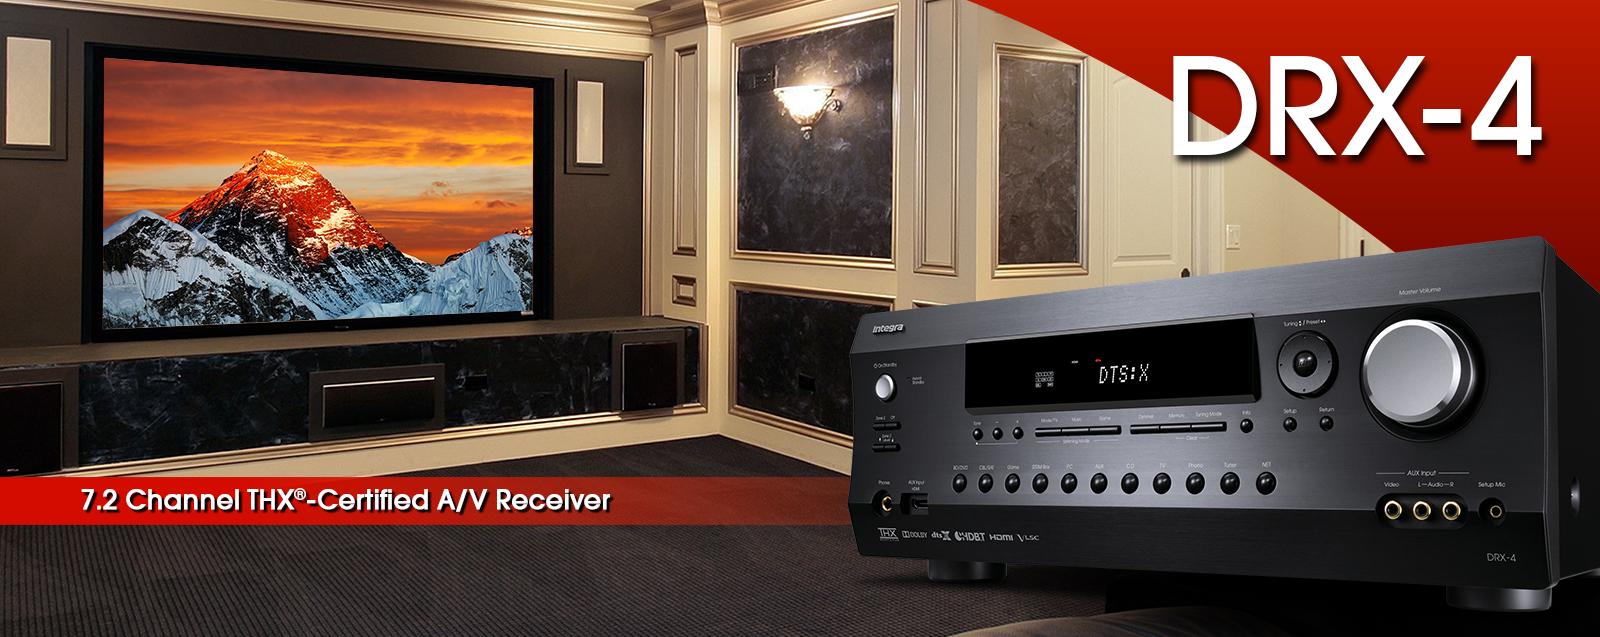 DRX-4 | INTEGRA HOME THEATER